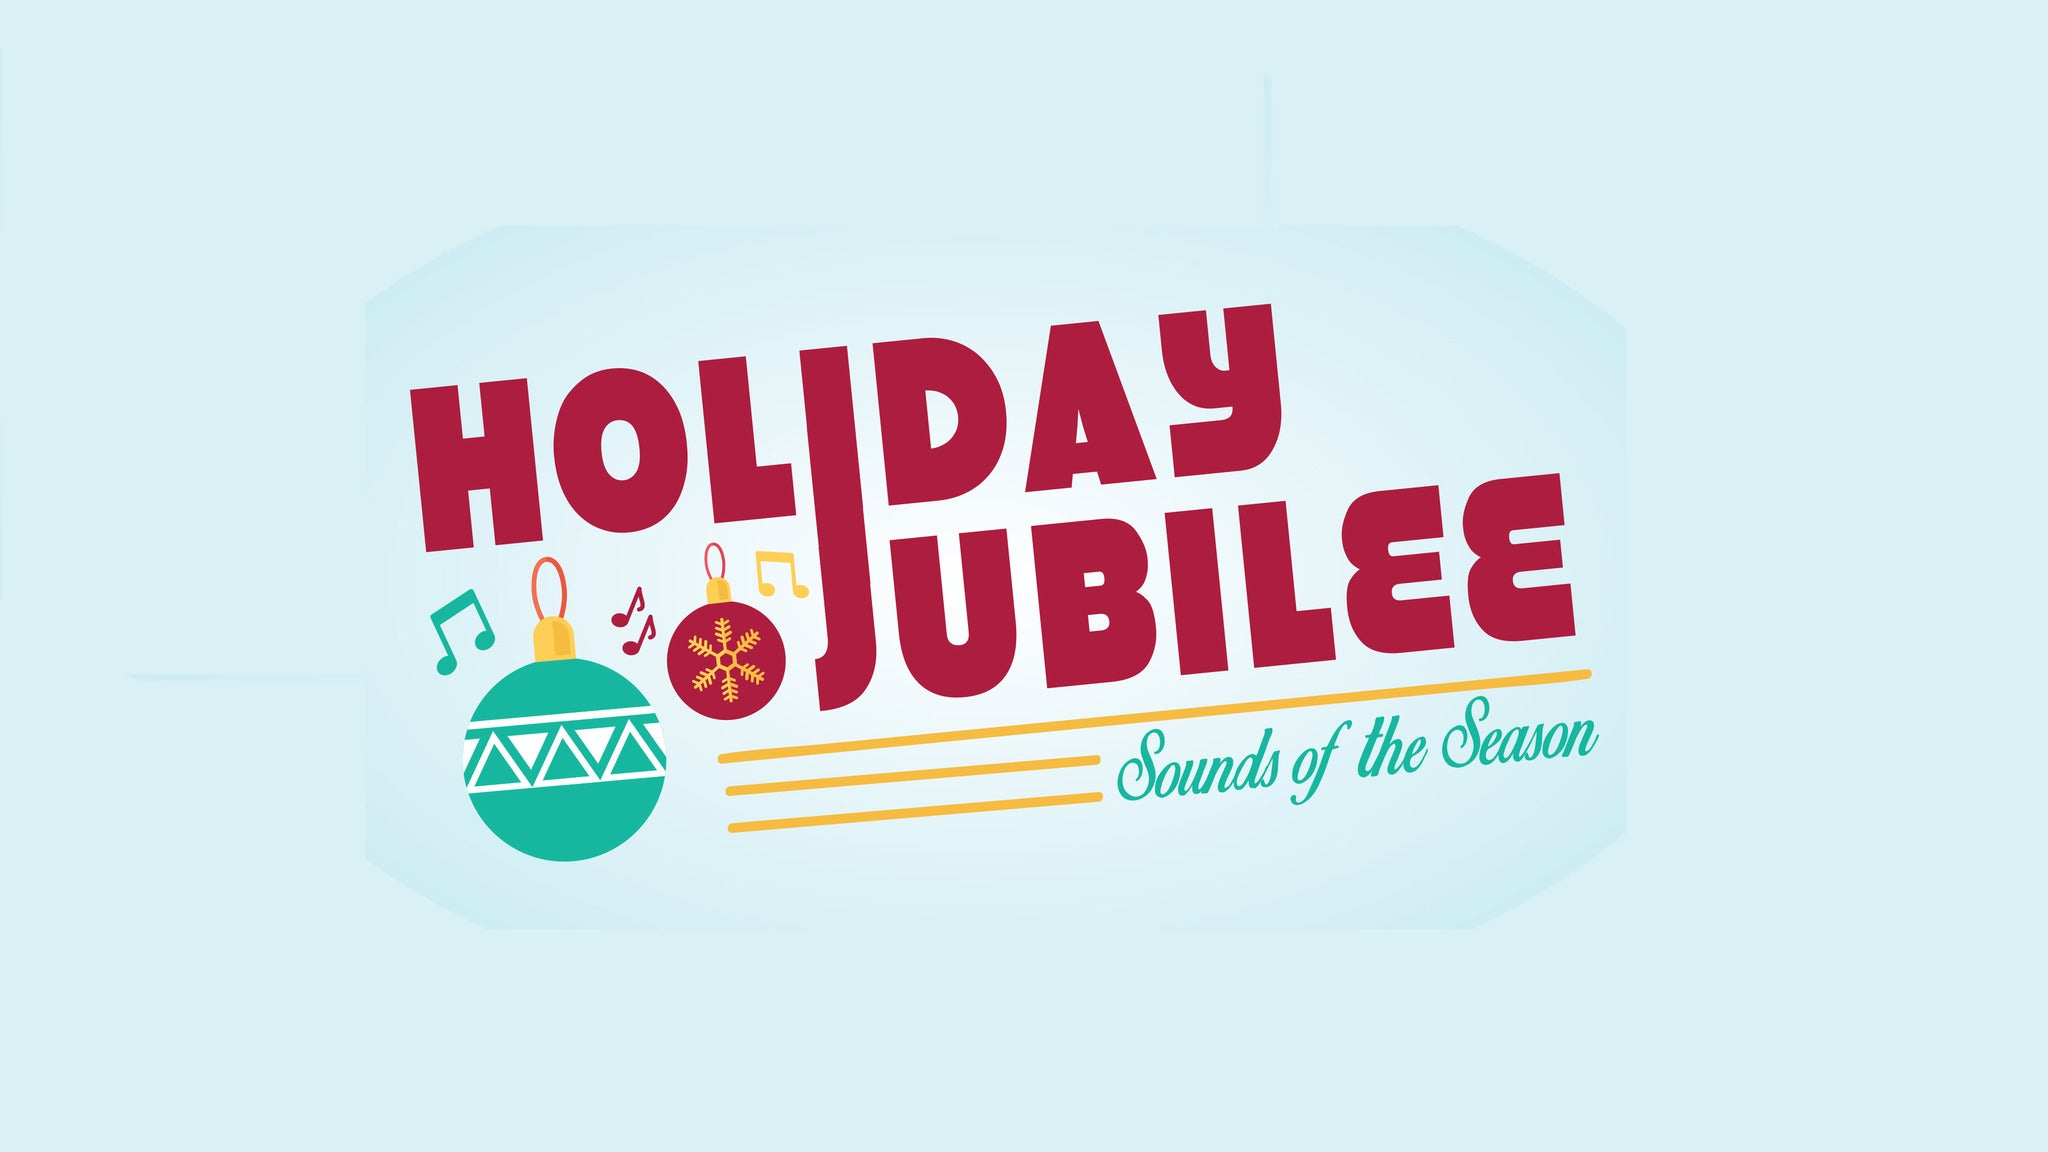 Holiday Jubilee at Tropicana Showroom